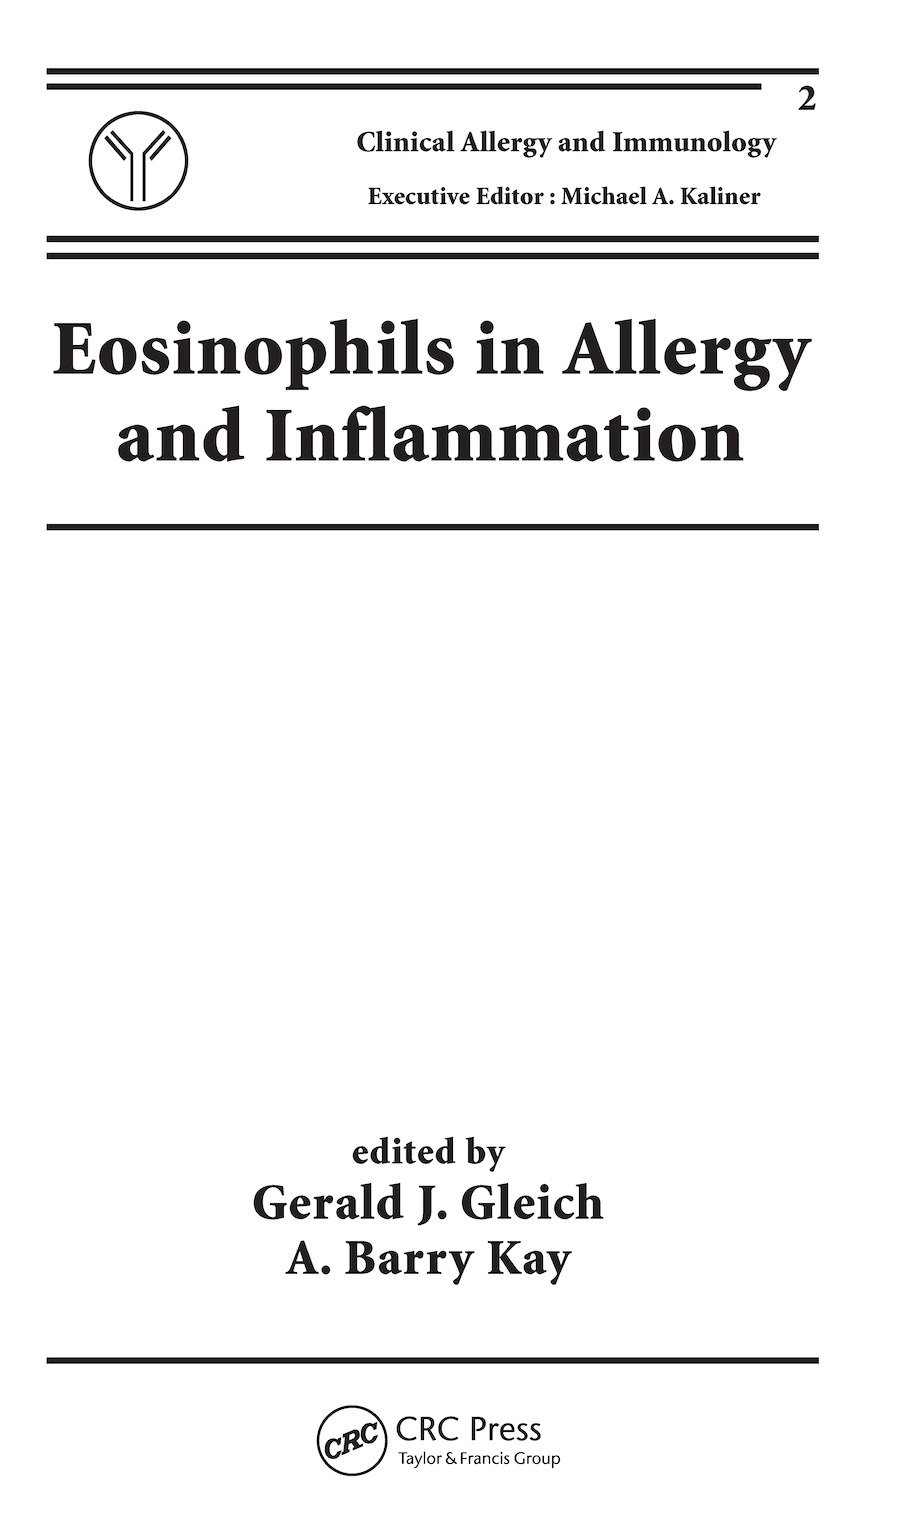 Eosinophils in Allergy and Inflammation